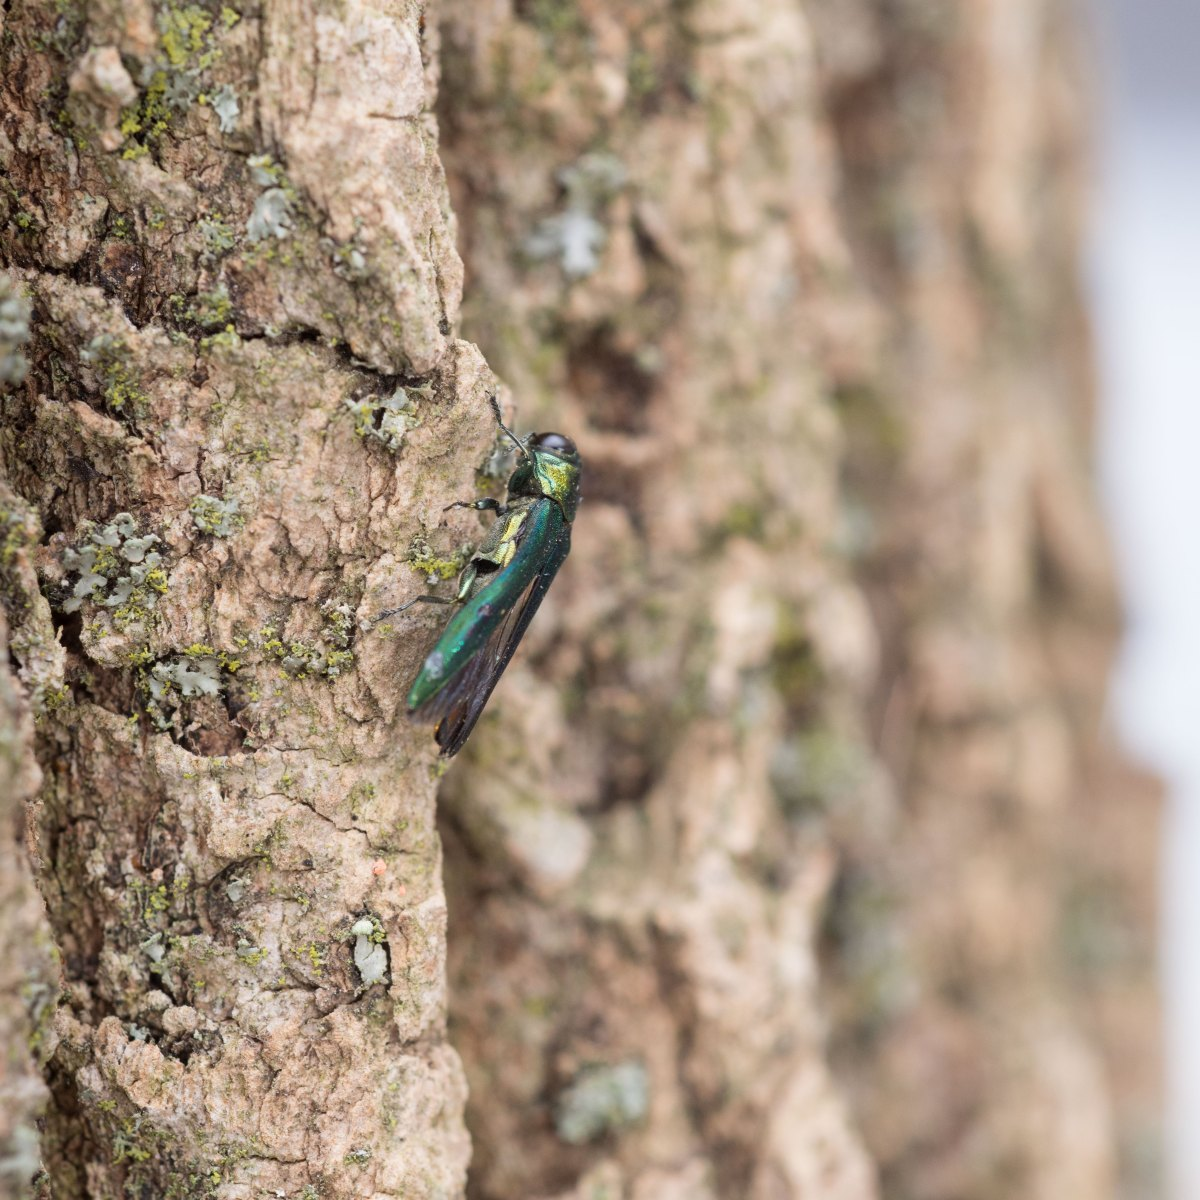 An emerald ash borer on a tree